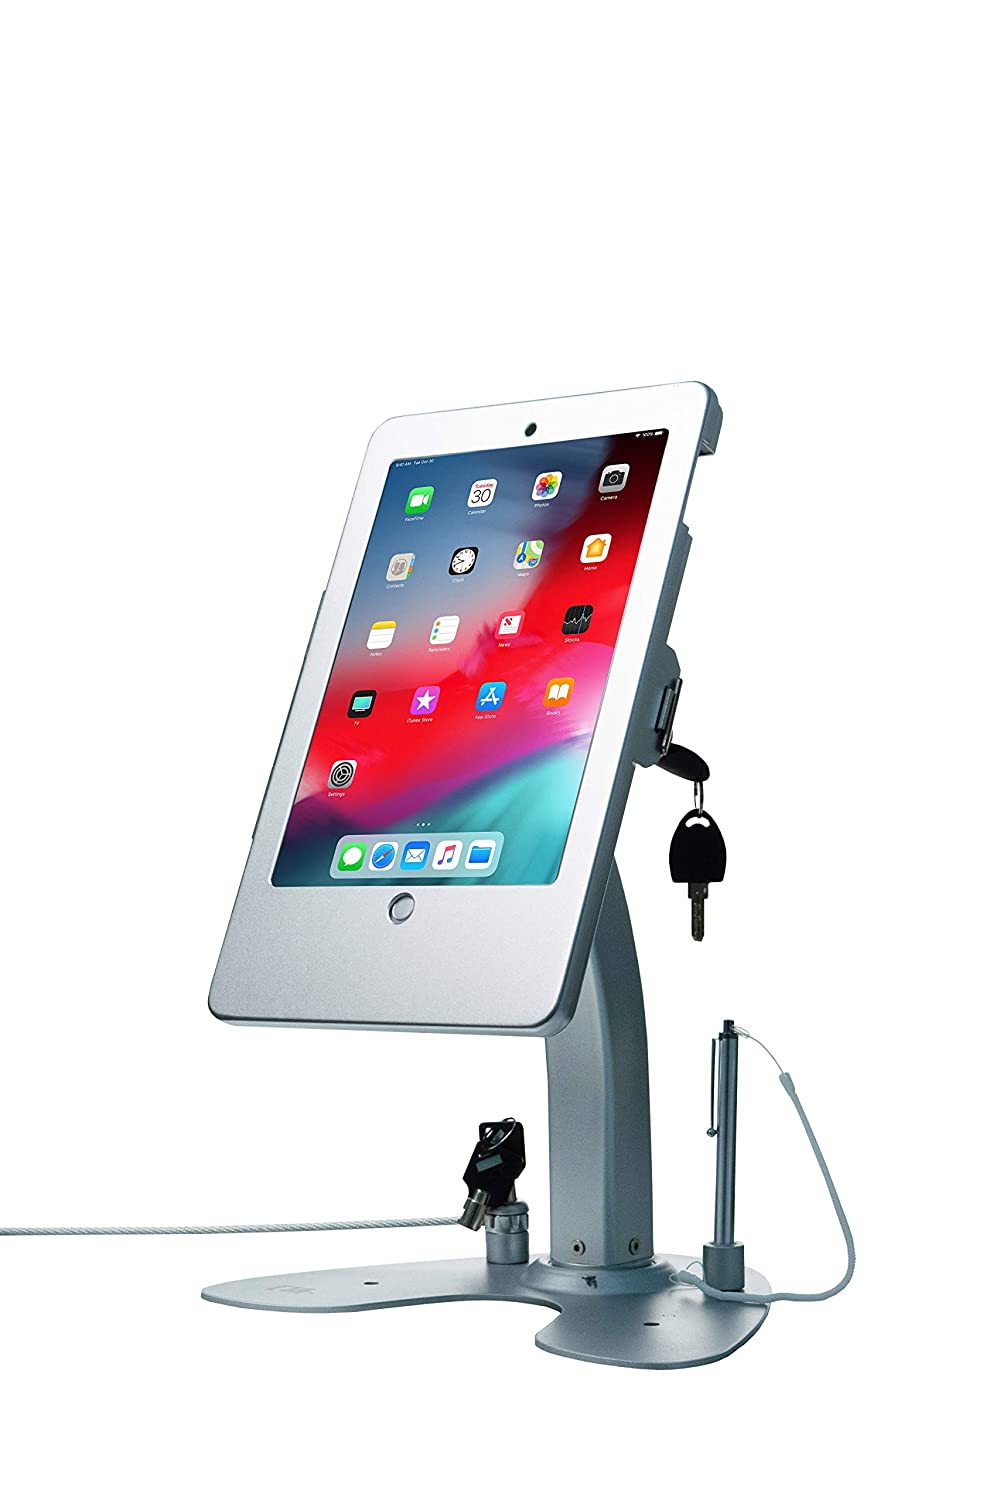 CTA Digital PAD-Ask Dual Security Kiosk Stand with Locking Case and Cable for iPad Gen. 5 (2017), iPad Gen. 6 (2018), iPad Air, and iPad Pro 9.7